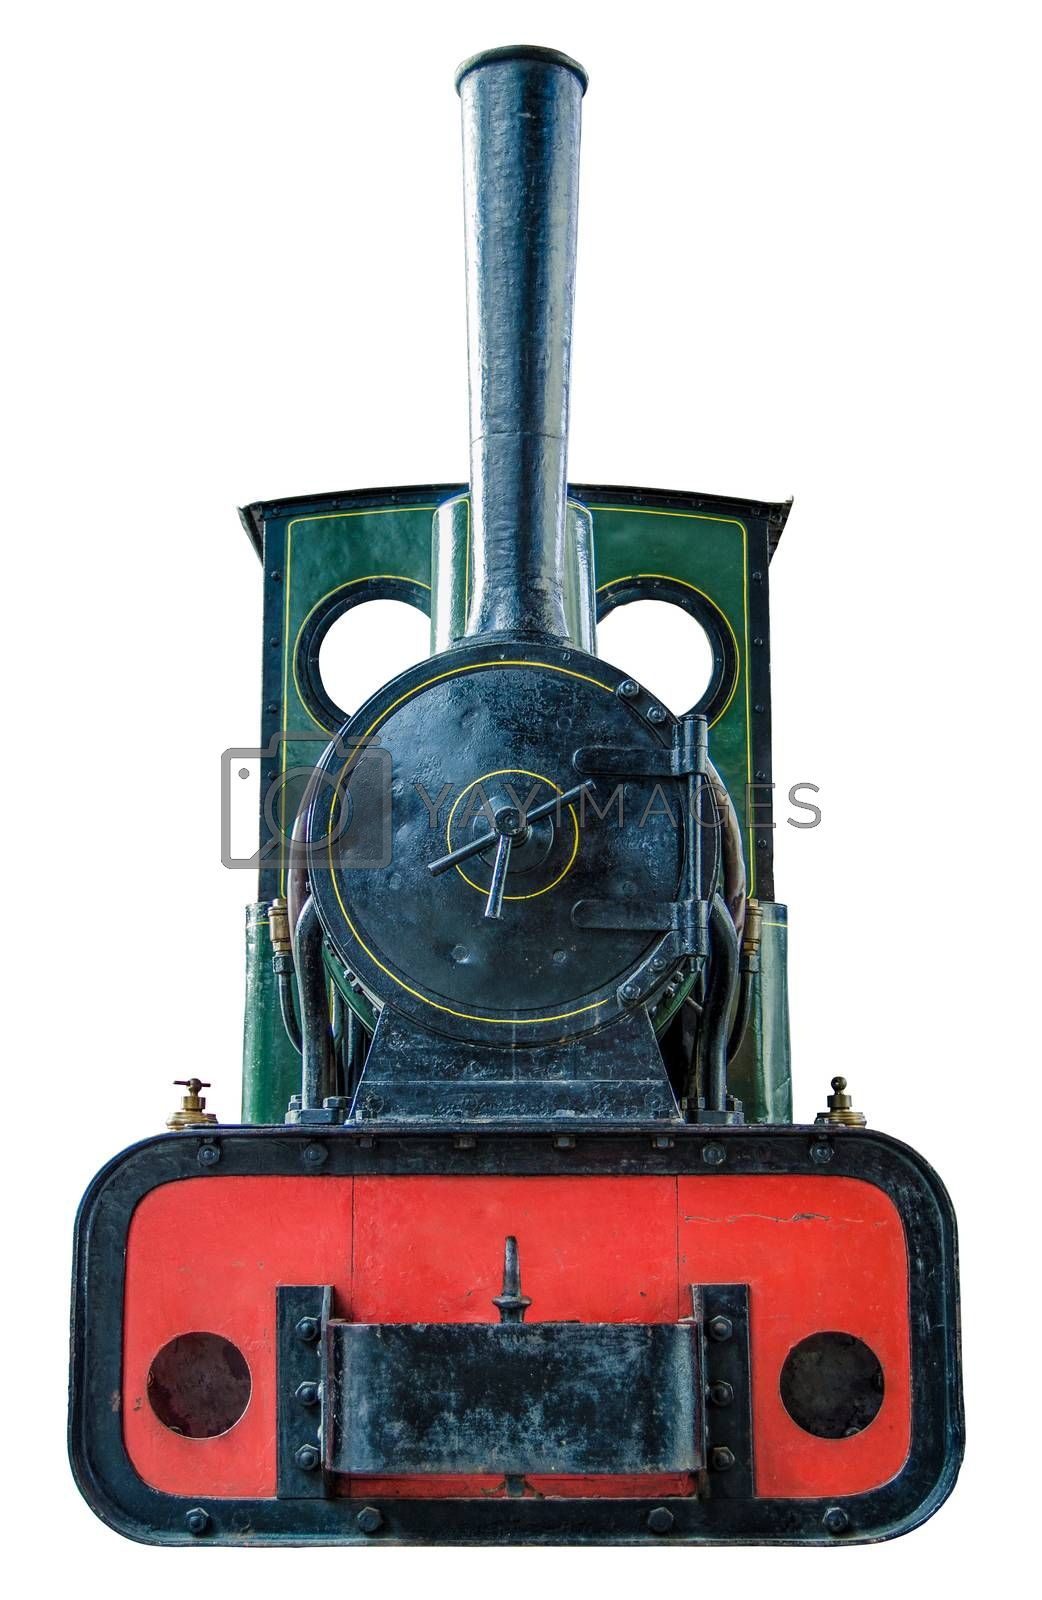 Royalty free image of Isolated Small Steam Engine by mrdoomits